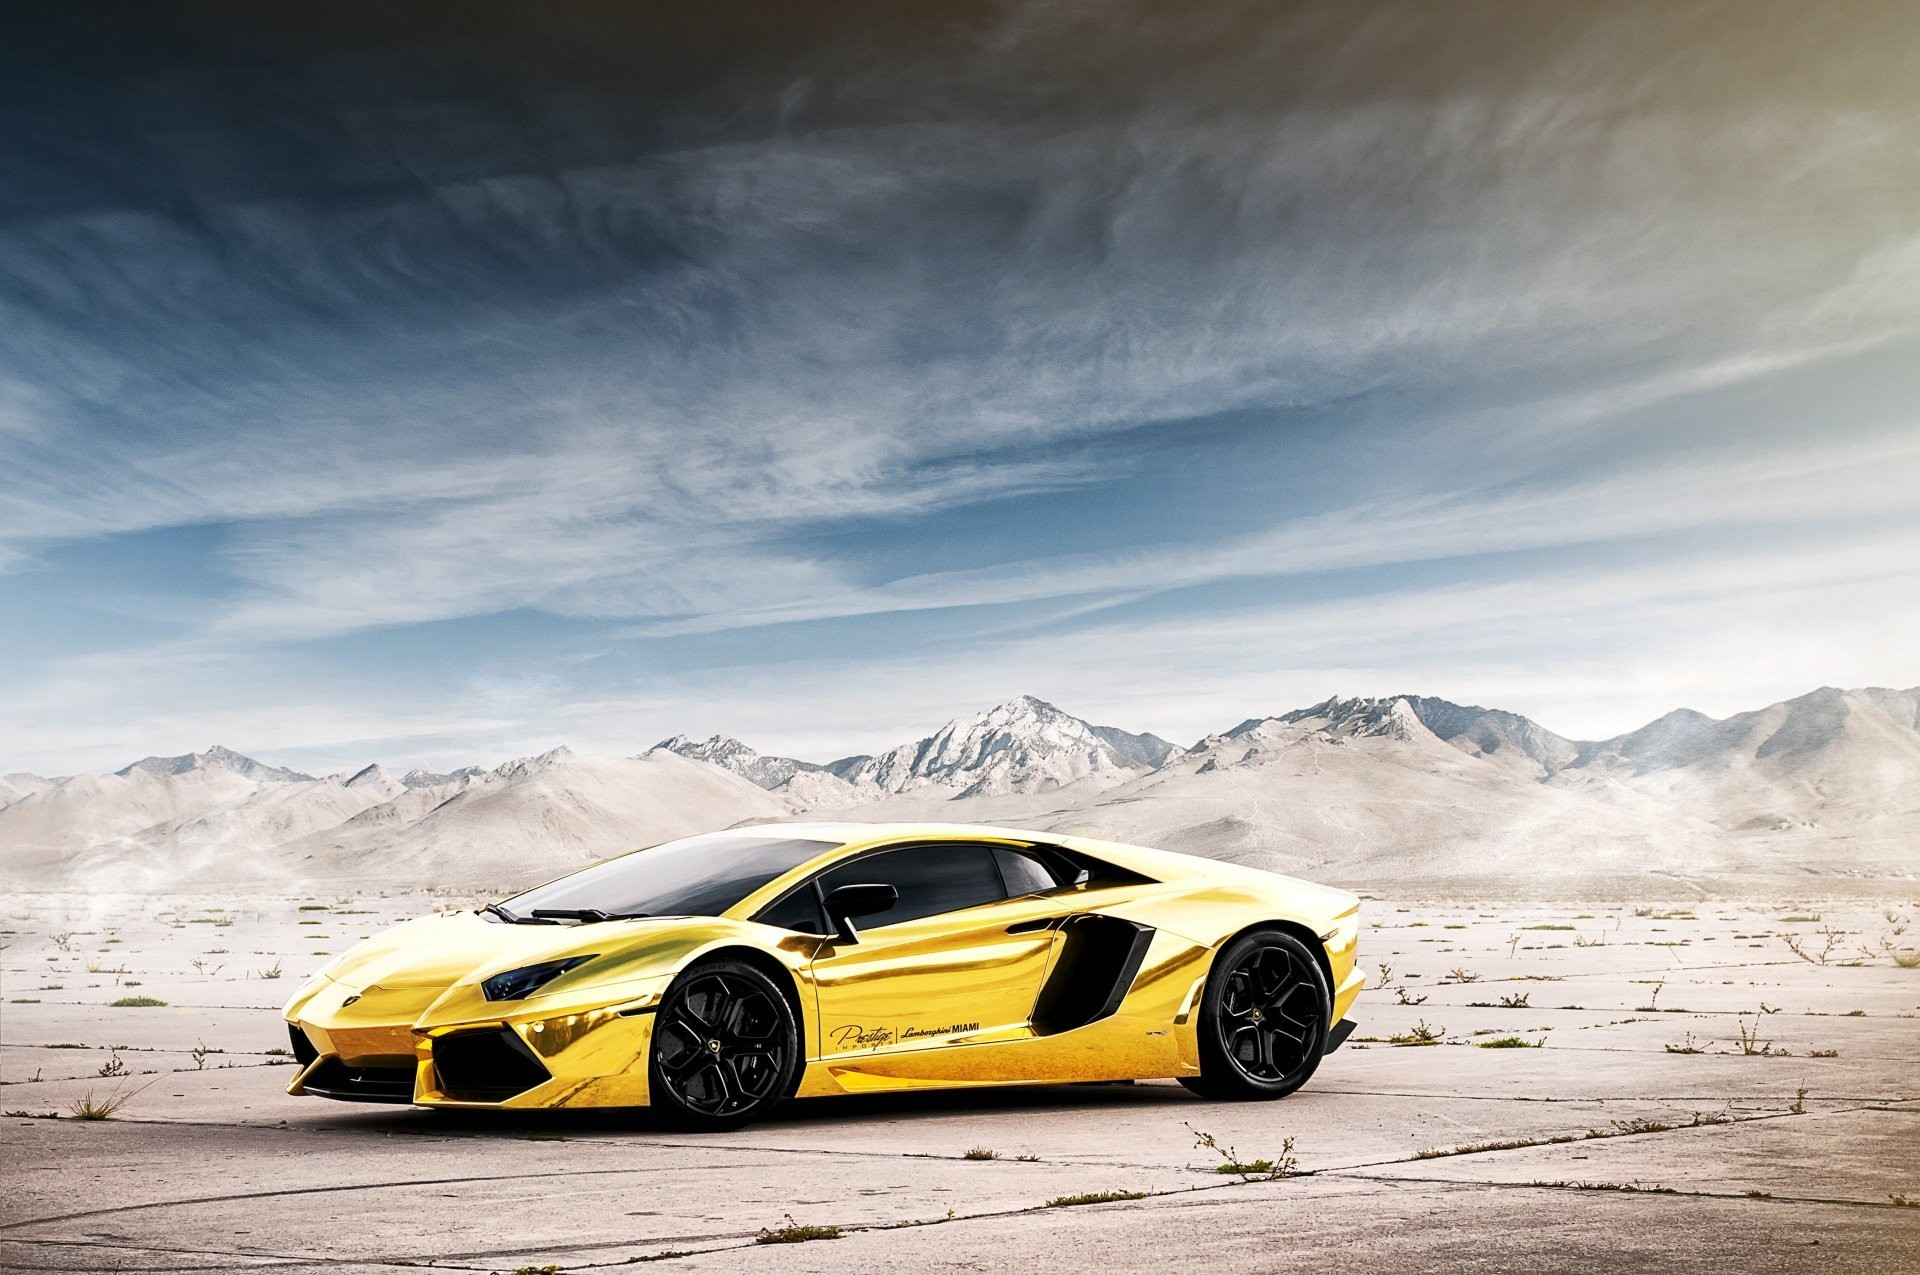 Gold Lamborghini Wallpaper (78+ images)